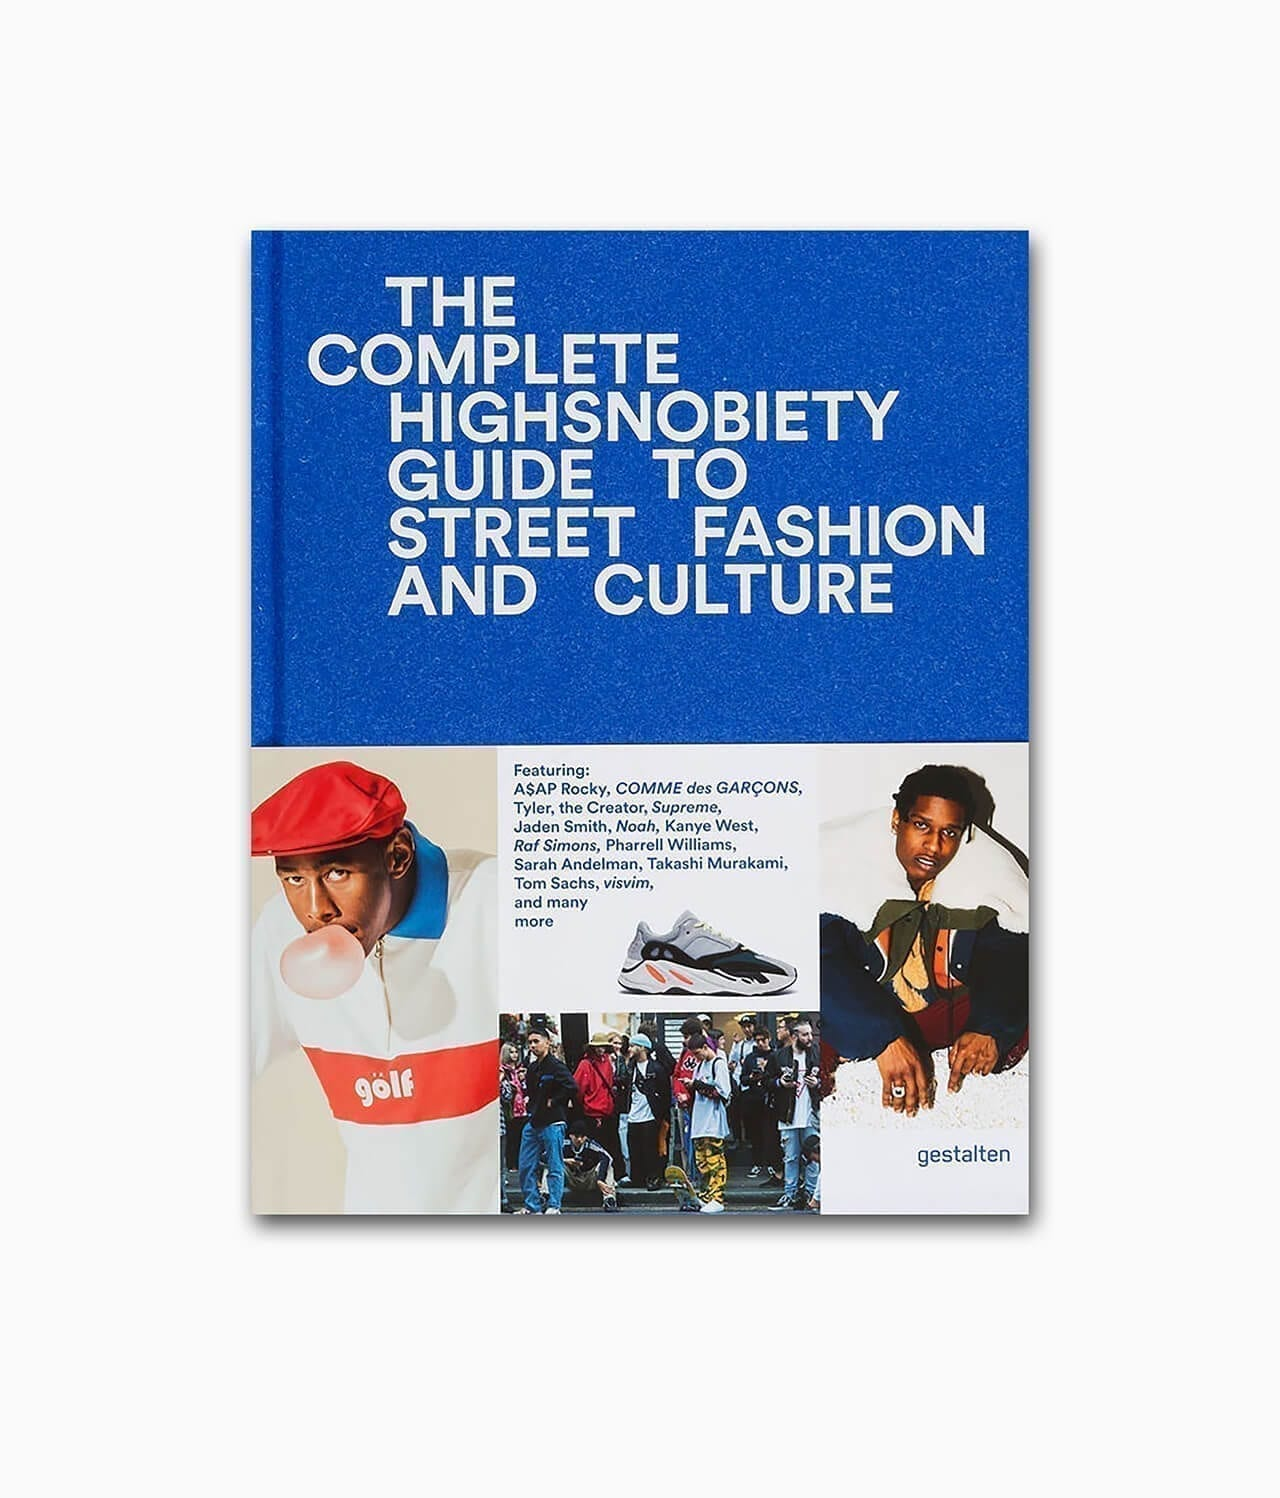 The Incomplete Highsnobiety Guide to Street Fashion and Culture gestalten Verlag Buchcover